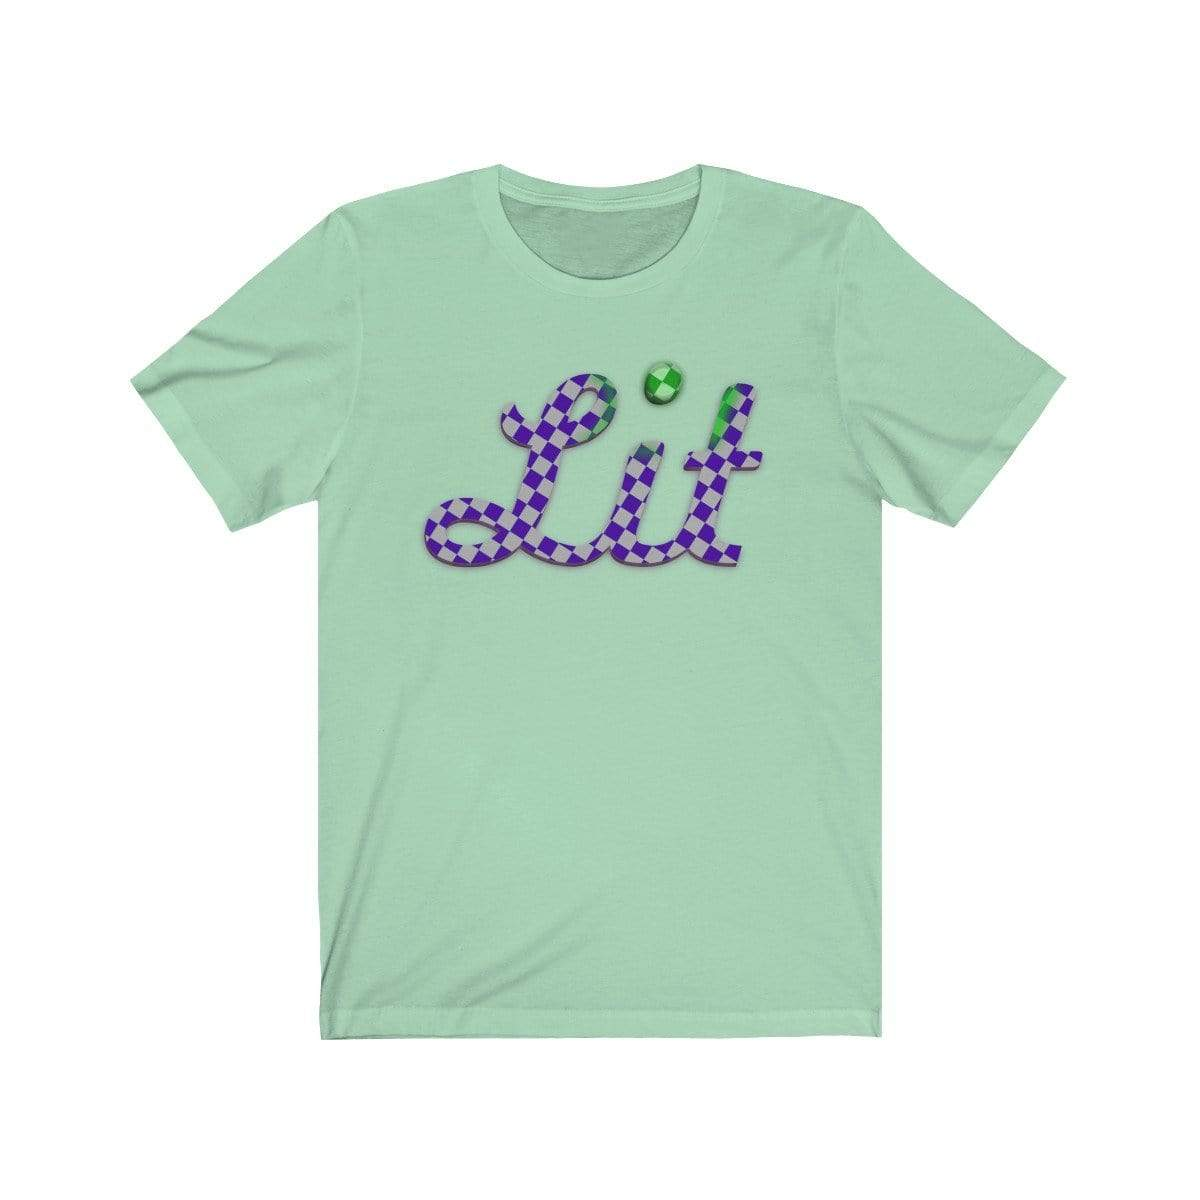 Plumskum T-Shirt Mint / S Checkered Lit T-shirt